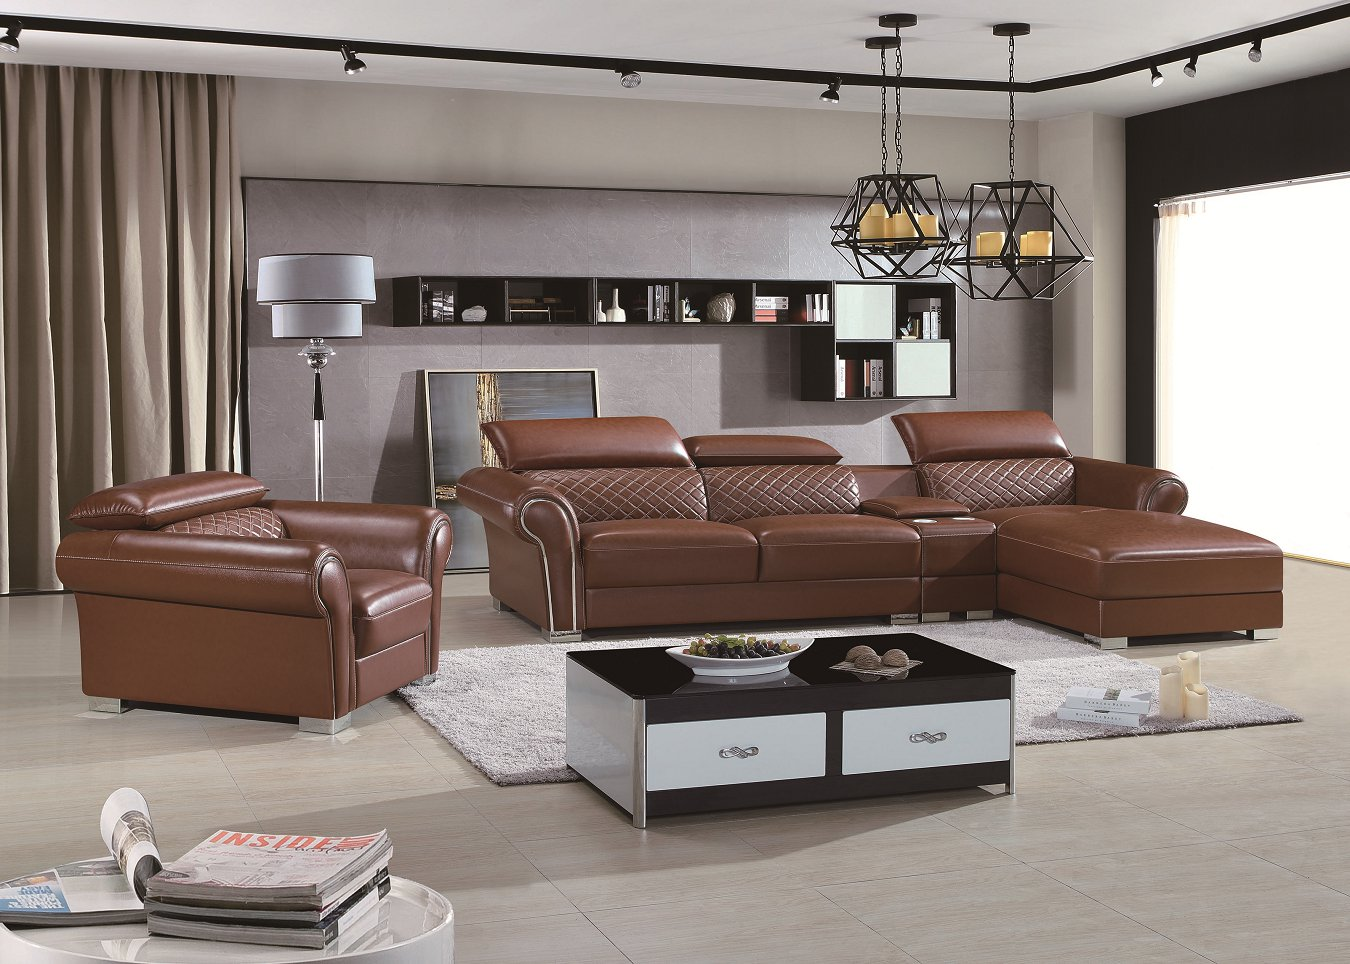 Modern Design Luxury Leather Sofa